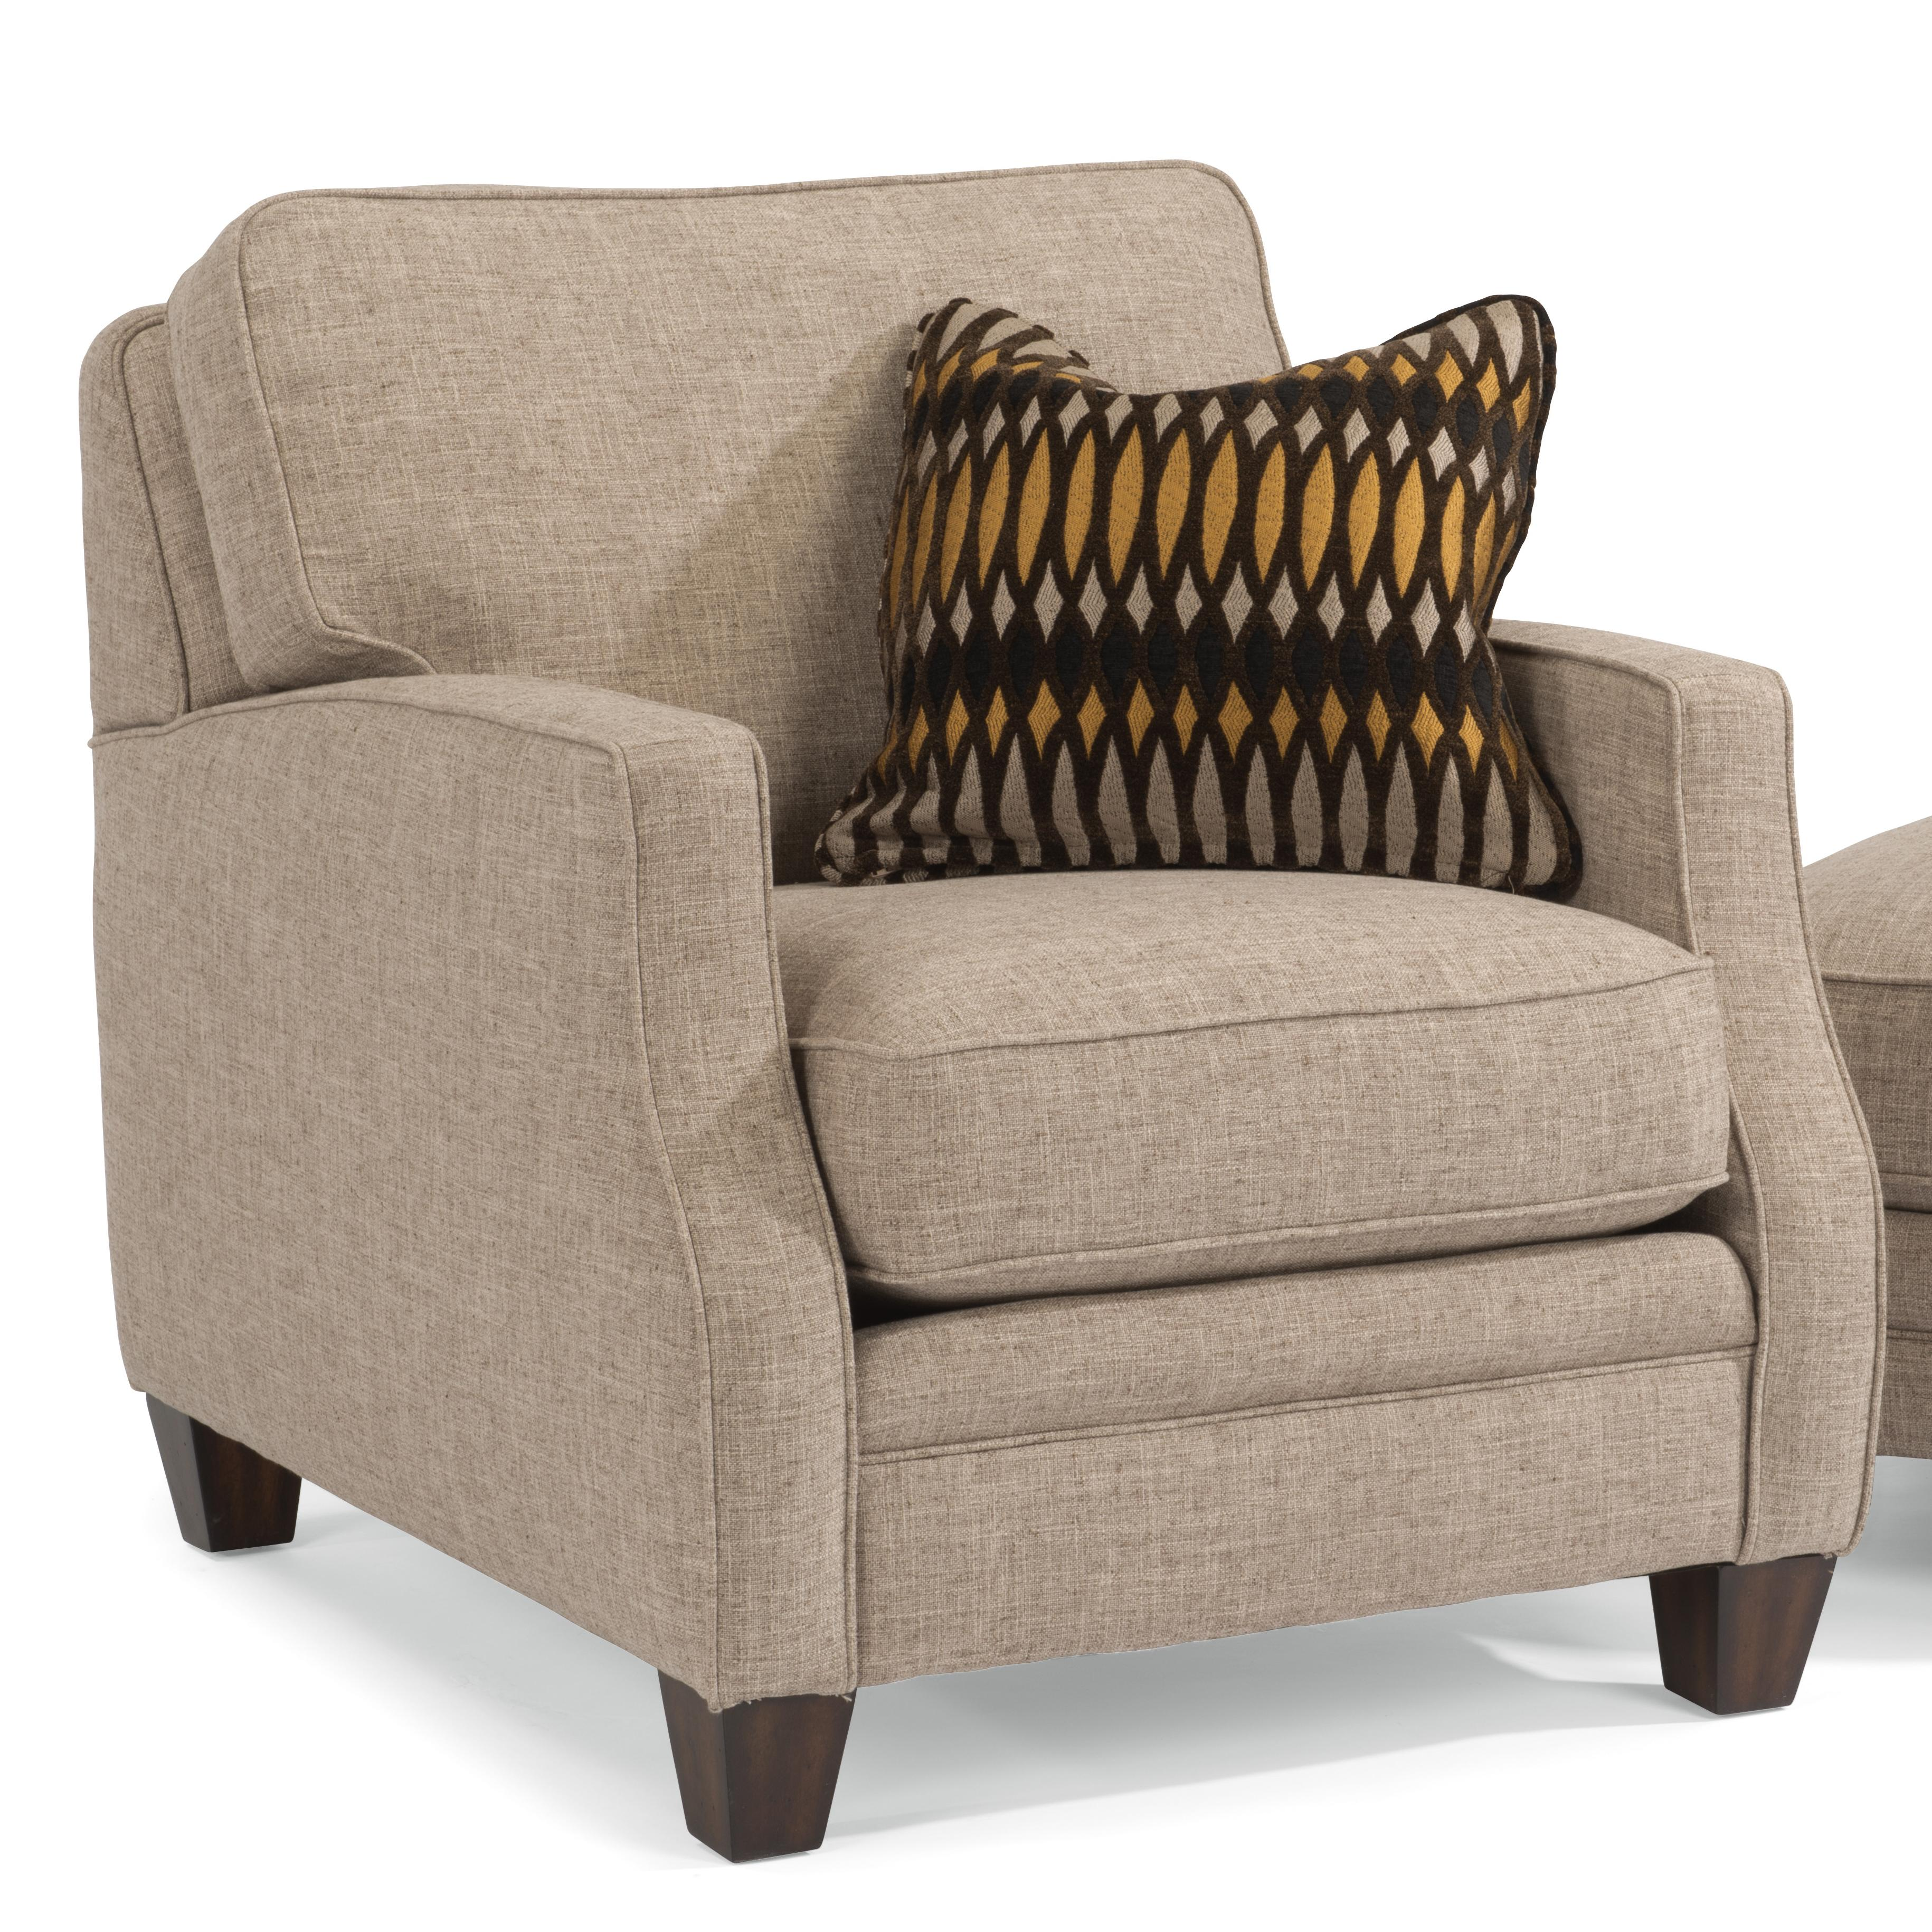 Flexsteel Lenox Transitional Chair With Scalloped Arms